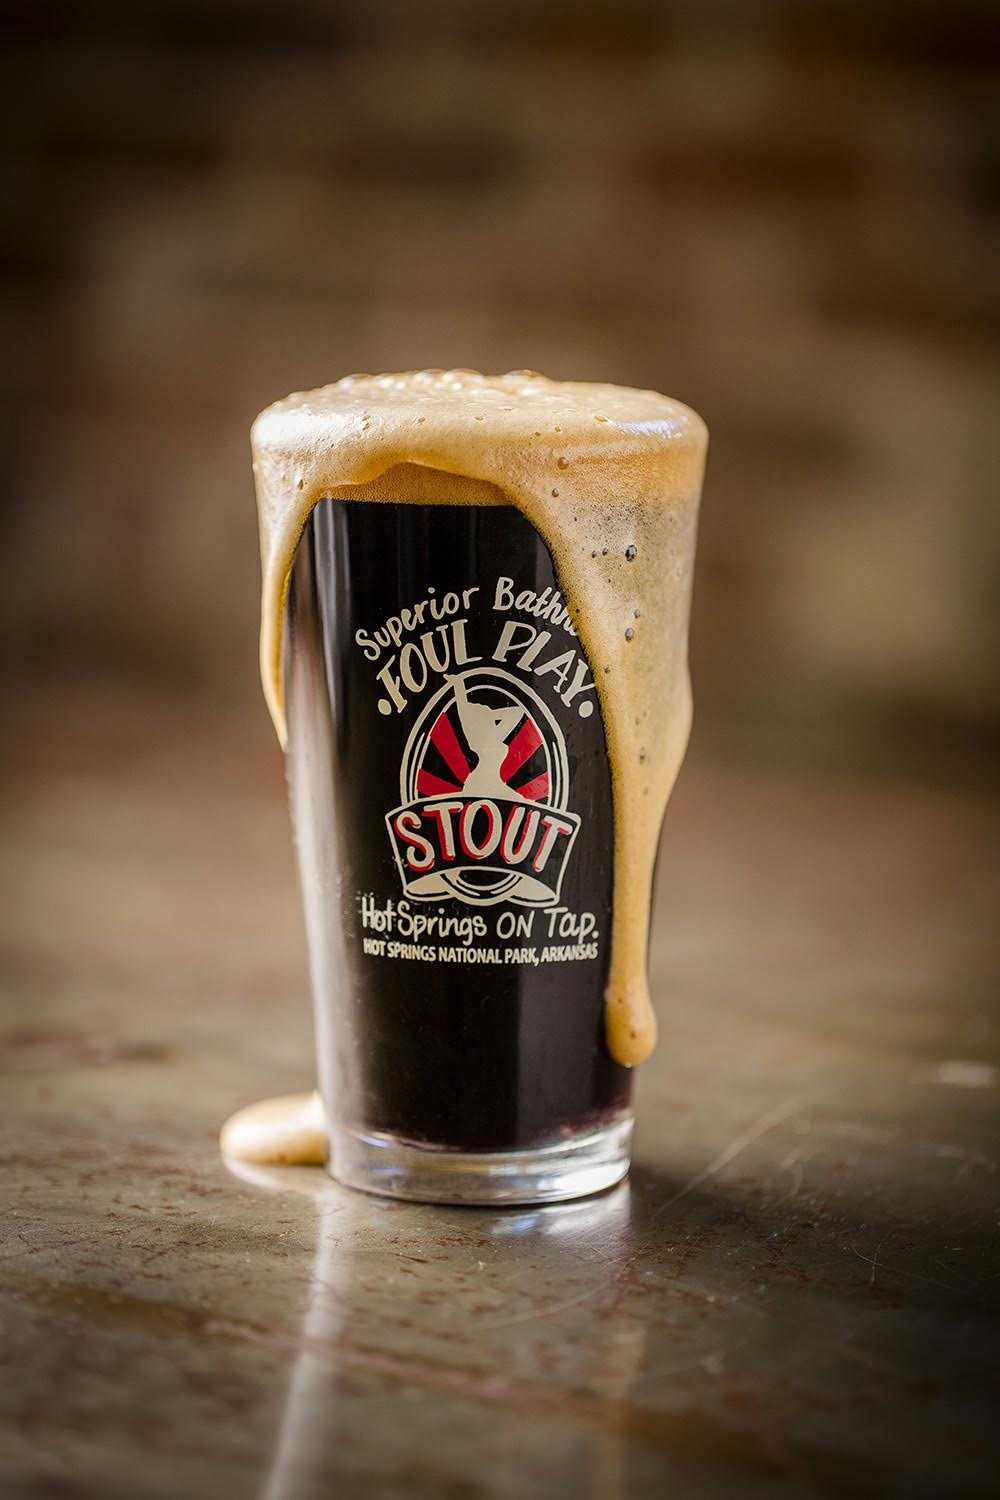 Foul Play Stout - Playful, complex, and beautiful.  British chocolate and black malts provide the color while oatmeal and roasted malts provide a creamy mouth-feel and coffee-like flavor.